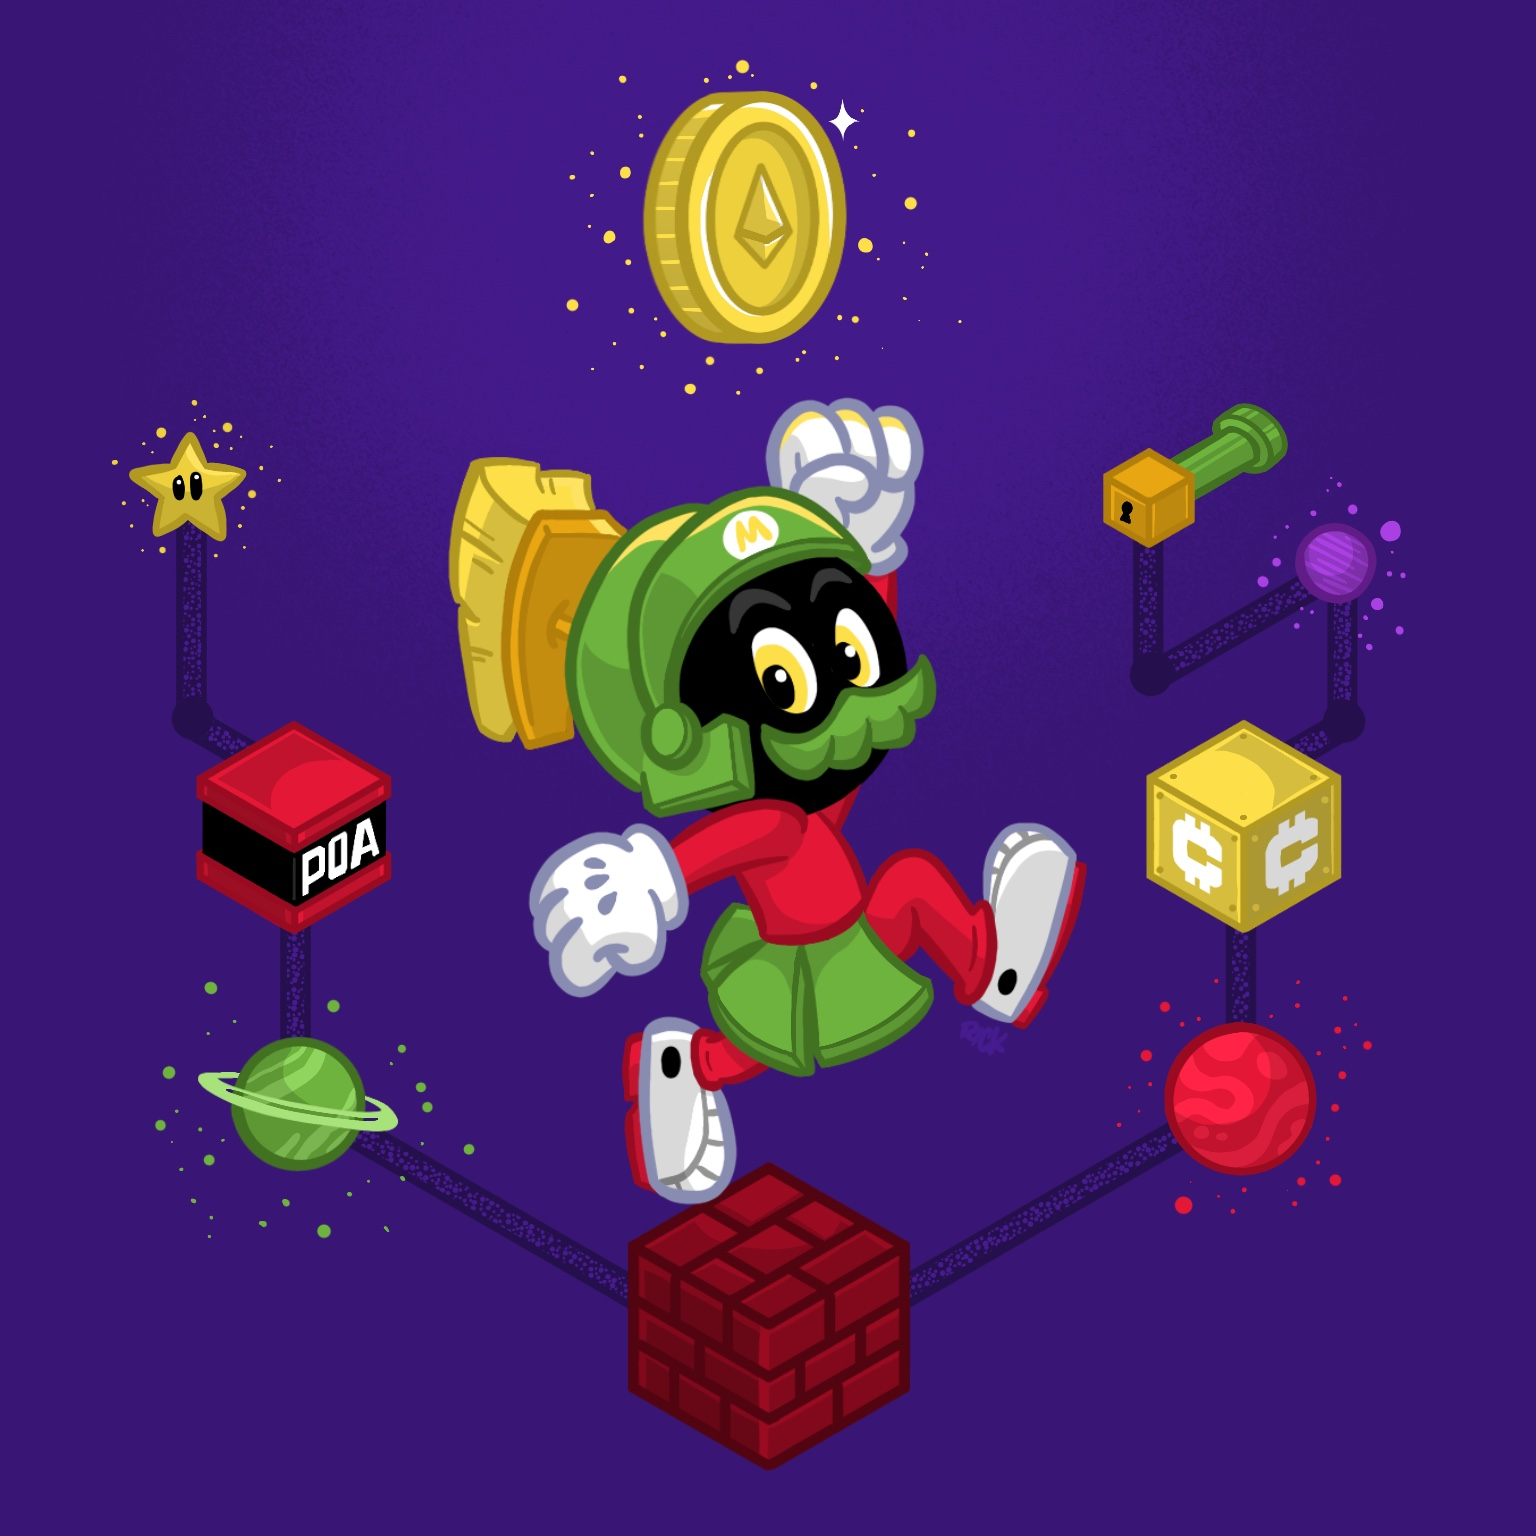 marvin the martian mashup with super mario as he explores a crypto themes mushroom kingdom blockchain collecting ethereum coins